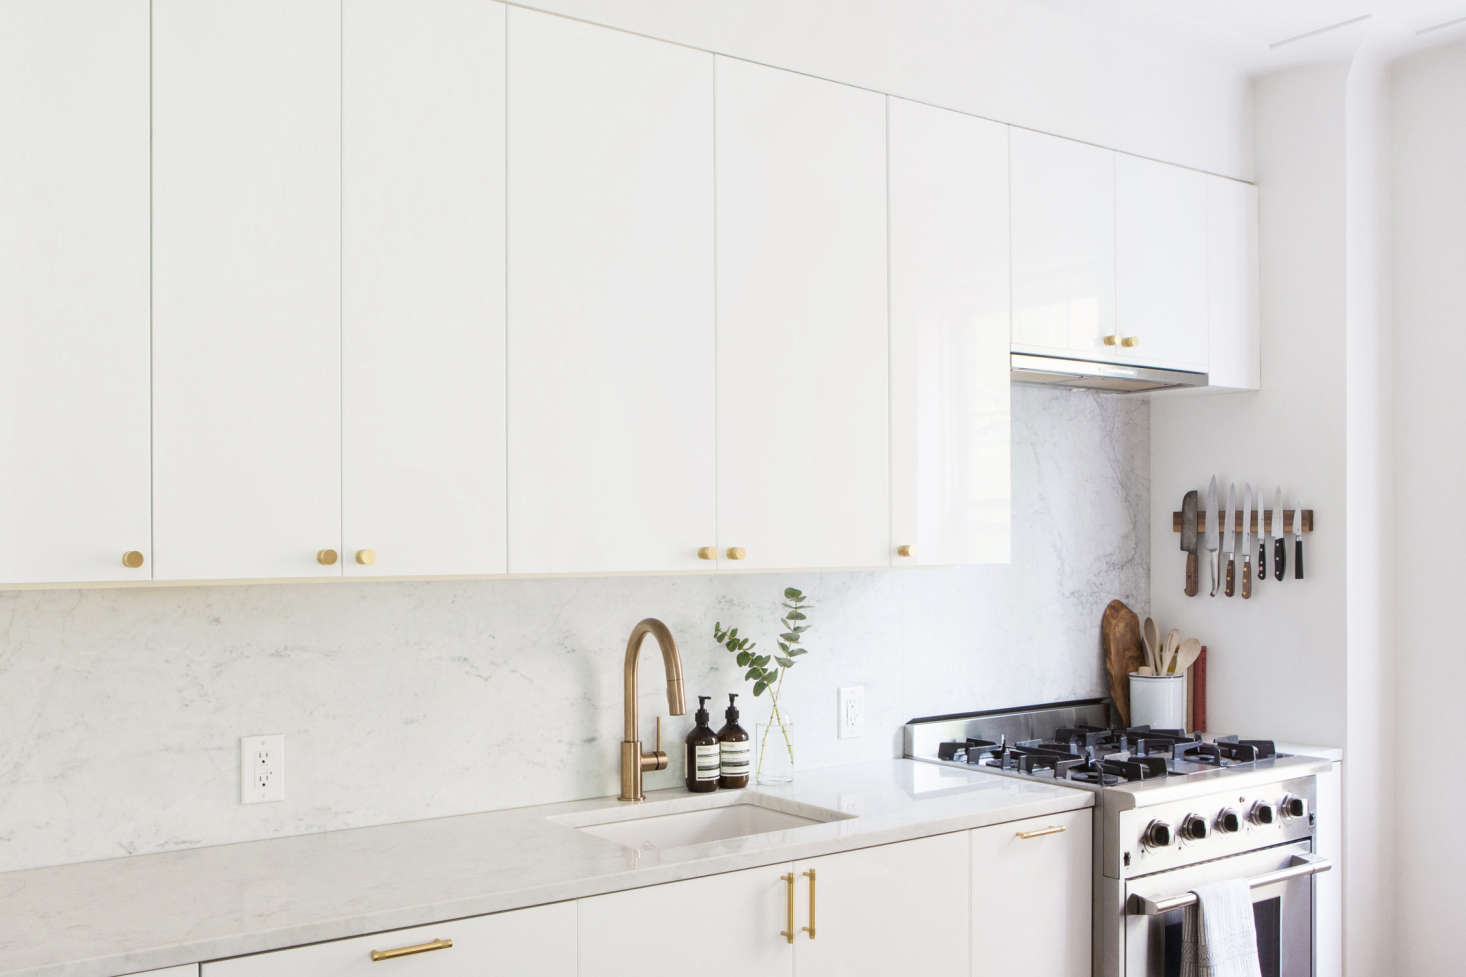 The Kitchen Is A Modified Ikea System With Ringhult Glossy White Cabinet  Doors And Brass Hardware